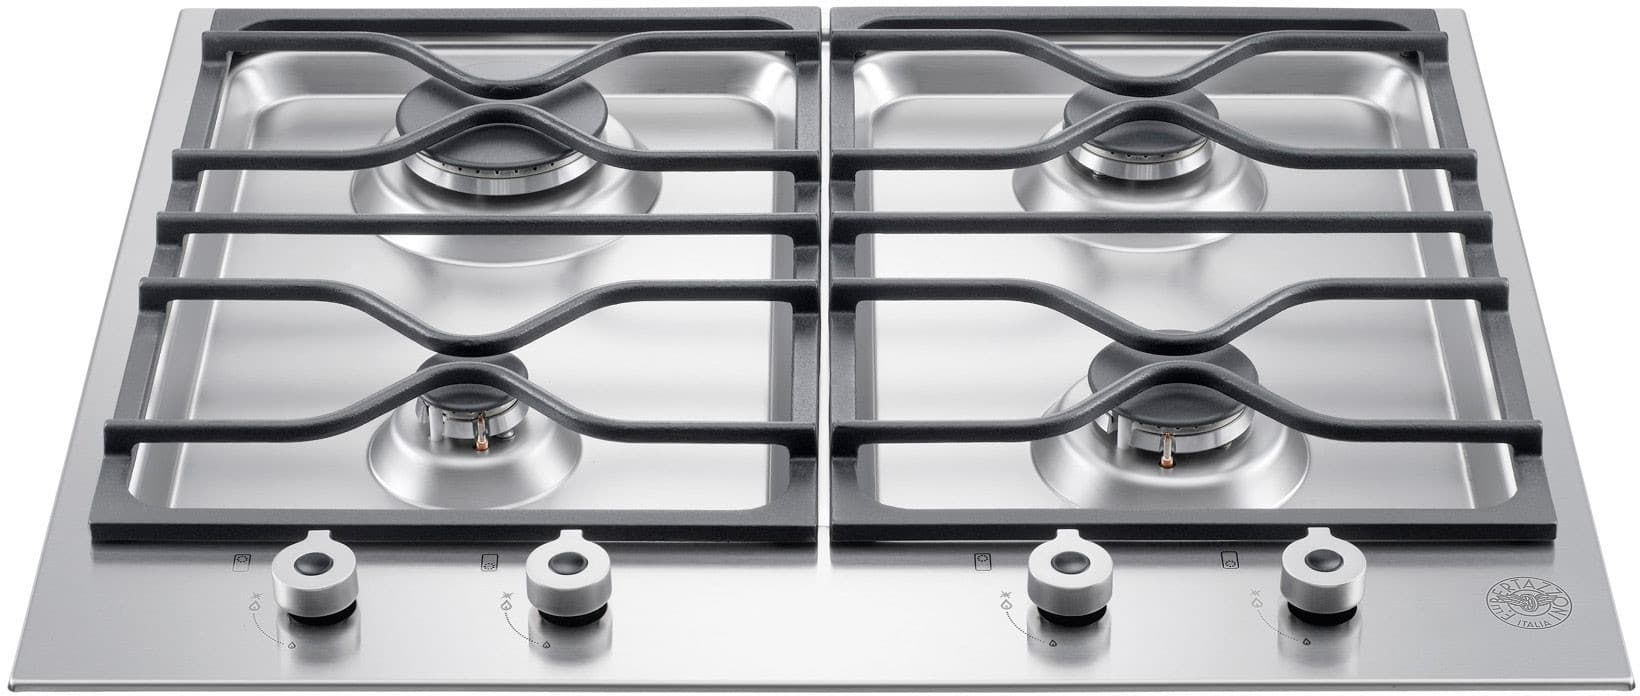 Bertazzoni Pm24400x 24 Inch Gas Cooktop With 4 Sealed